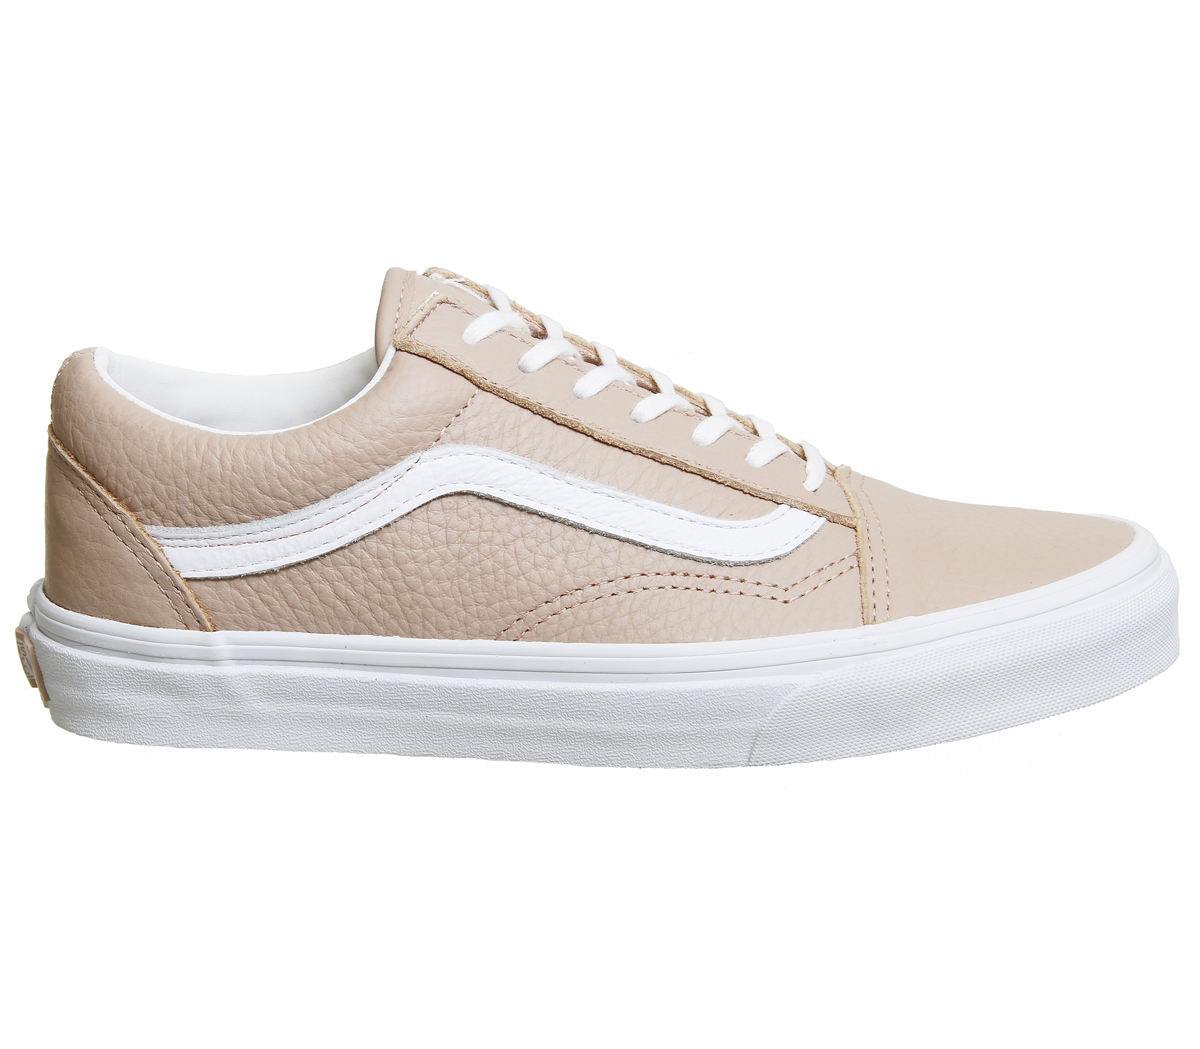 SENTINELLE Womens Vans Old Skool formateurs acajou ROSE TRUE formateurs  blanc chaussures